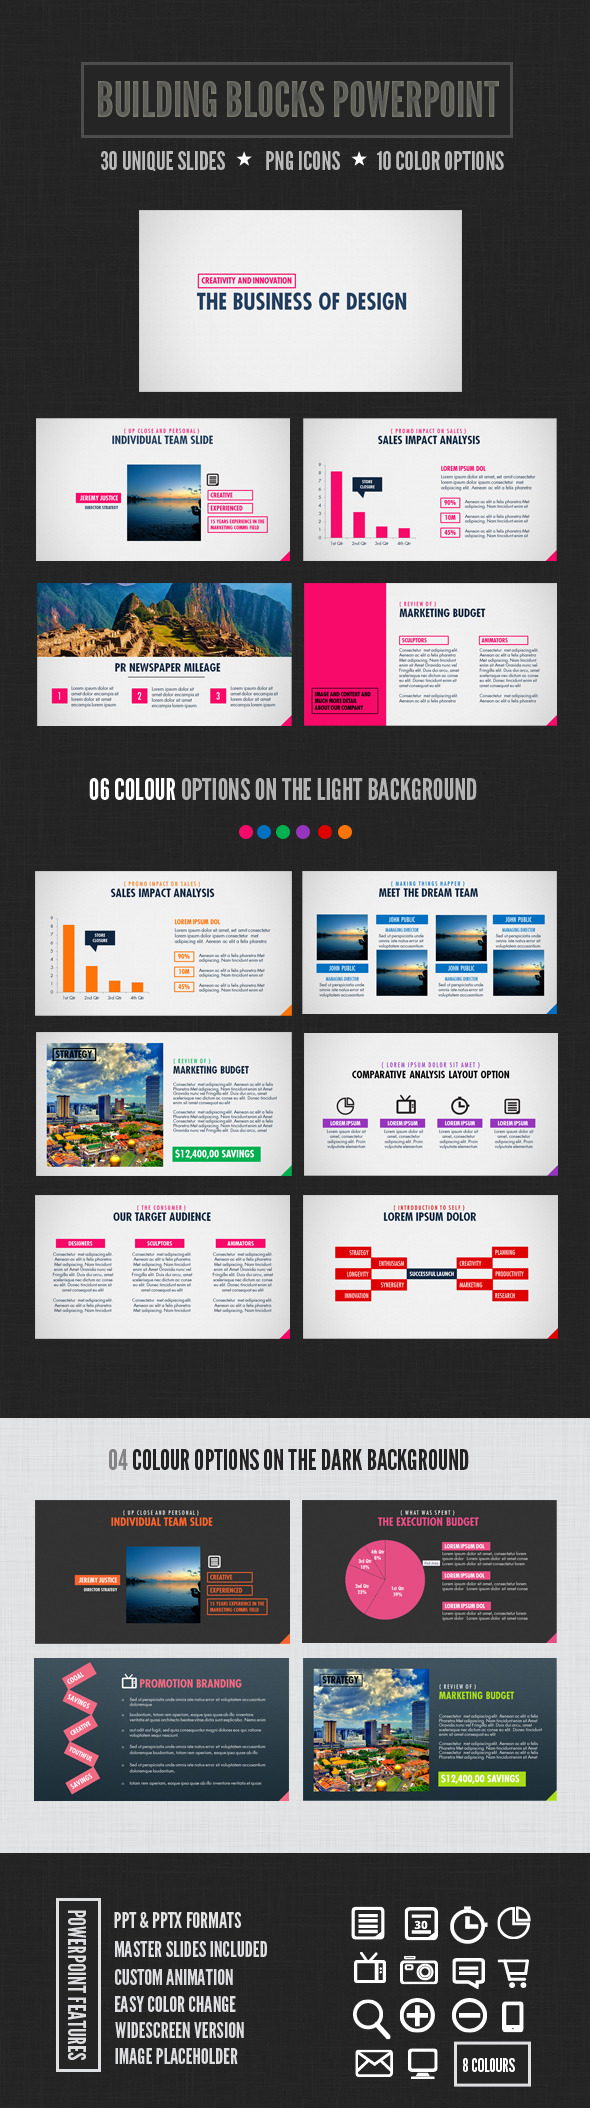 Building Blocks Powerpoint - PowerPoint Templates Presentation Templates